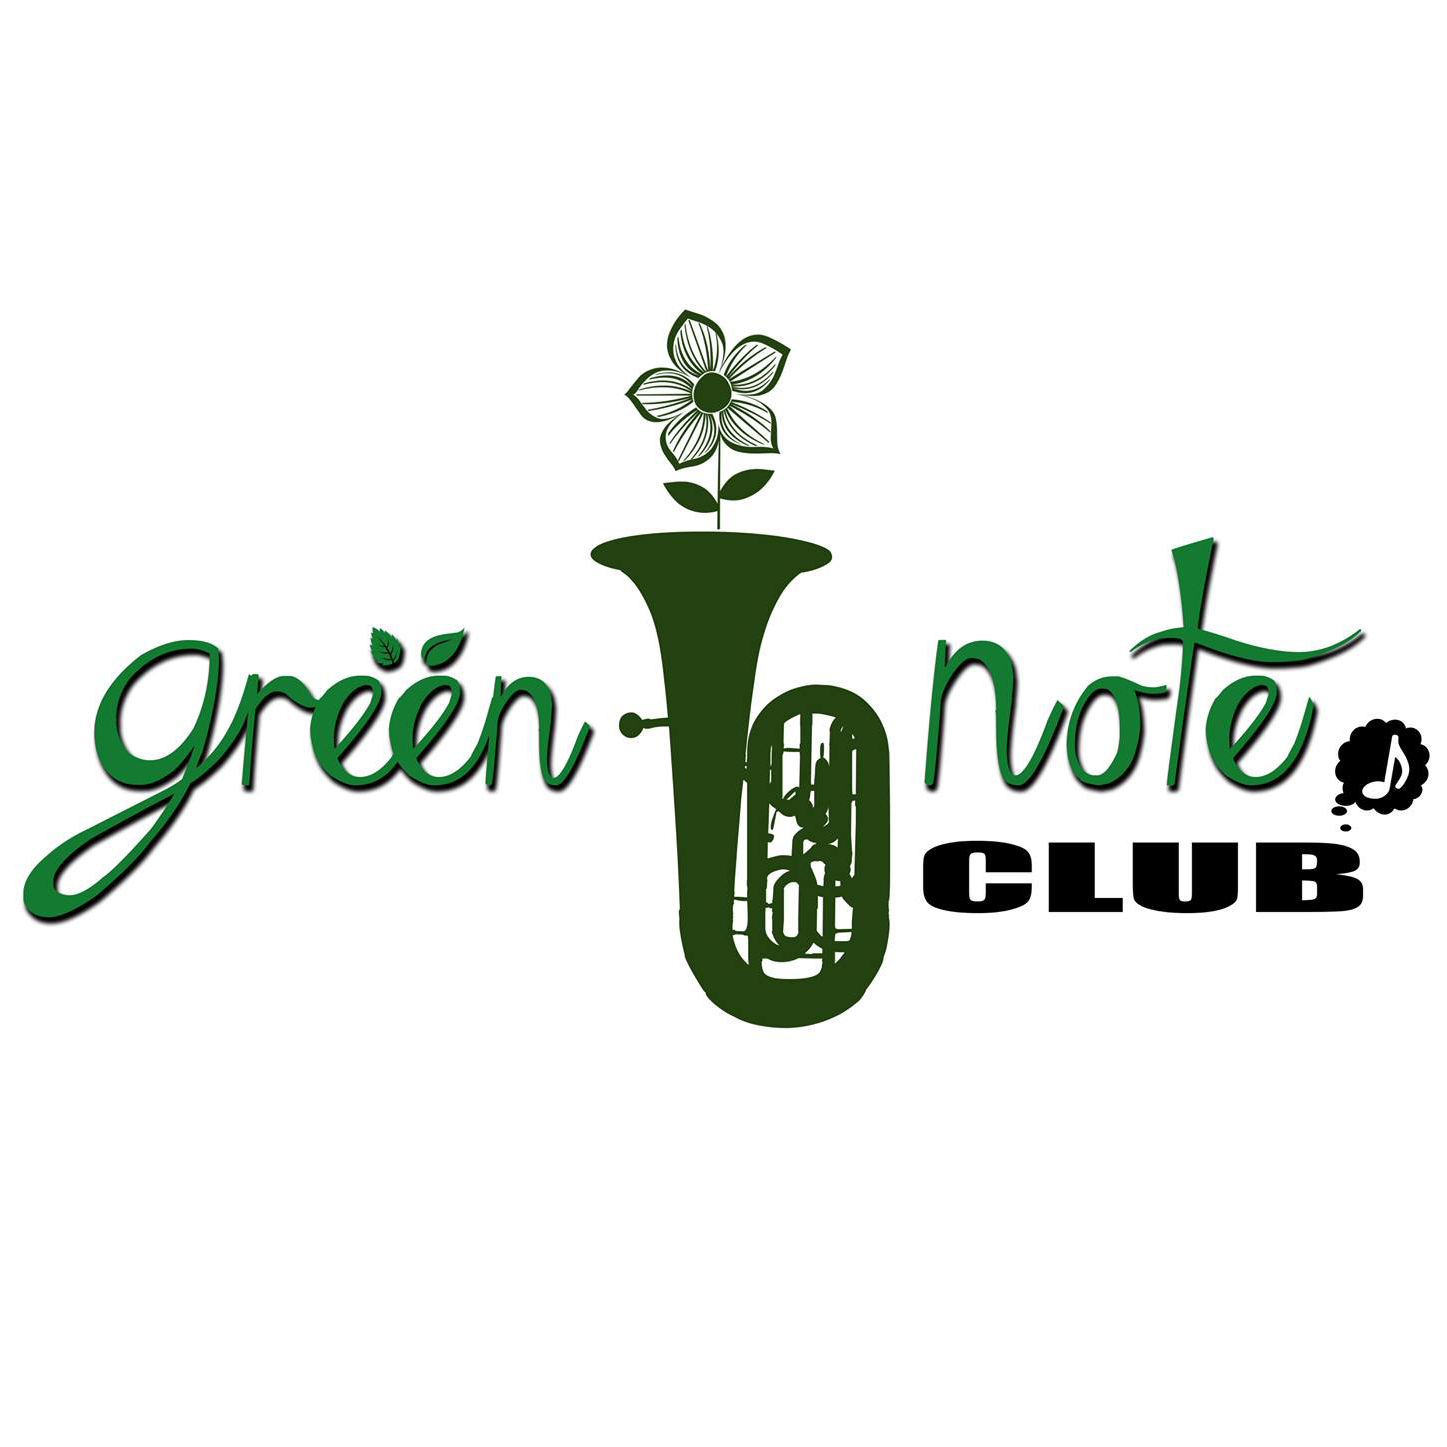 Green Note Club